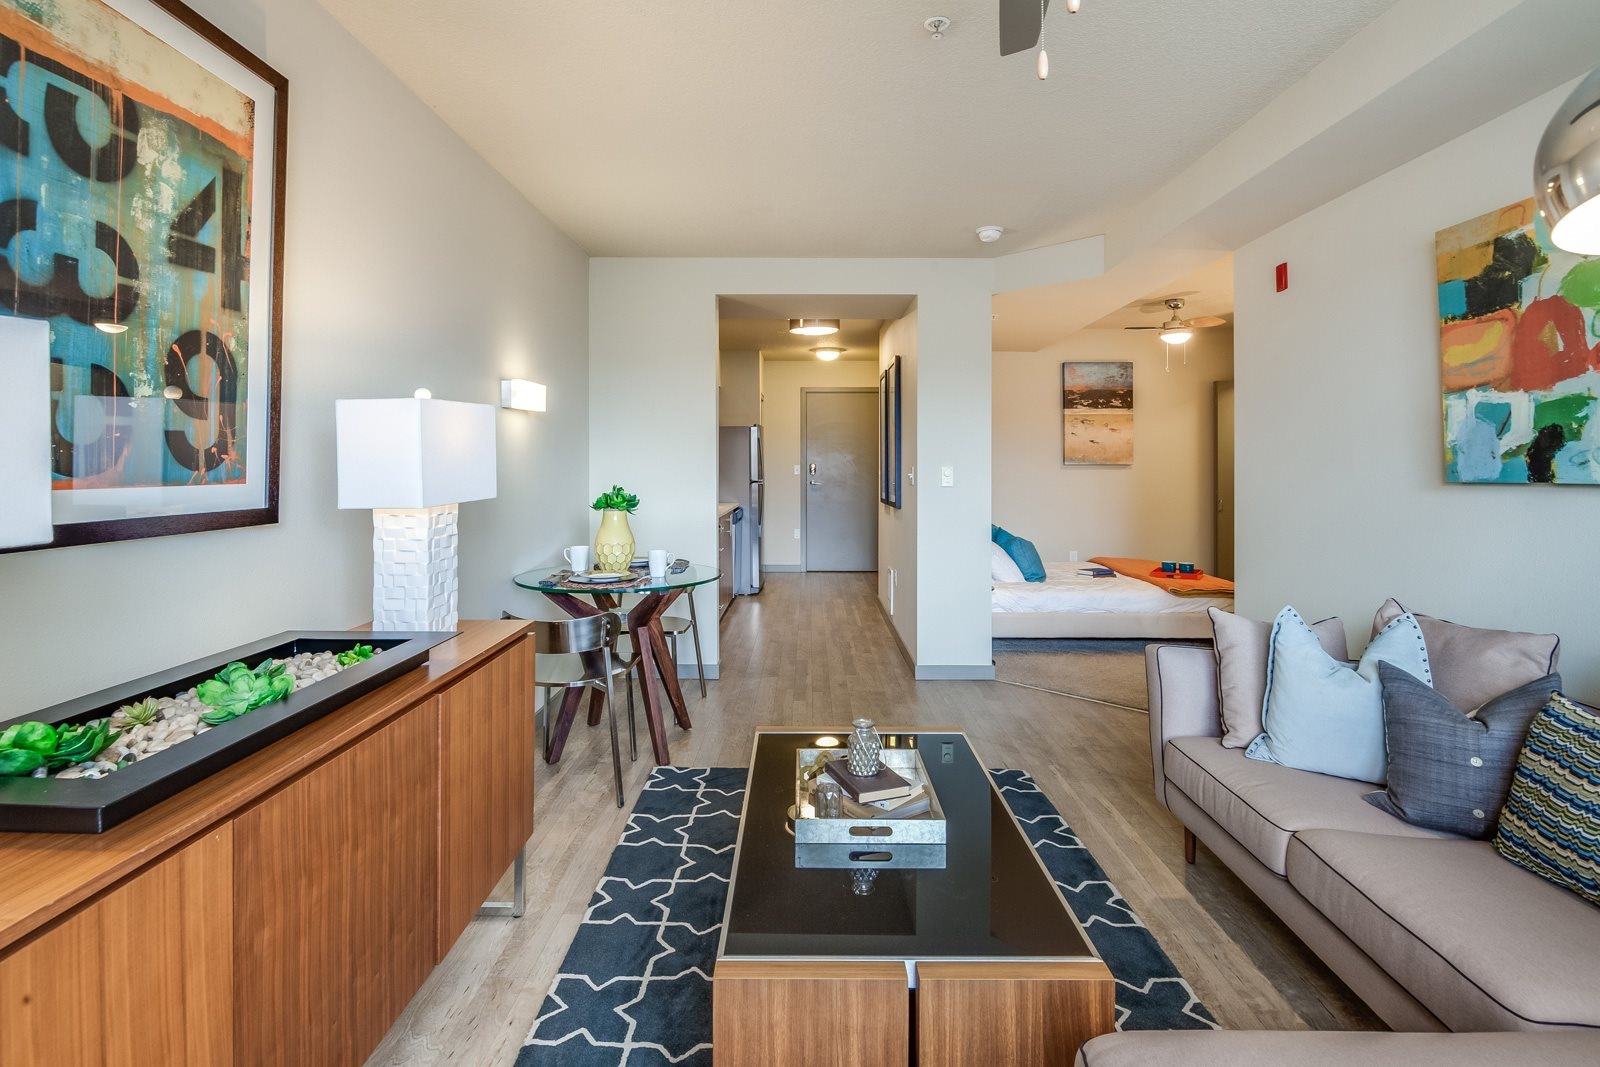 Wide Range of Luxury Apartments at Platform 14, Hillsboro, Oregon